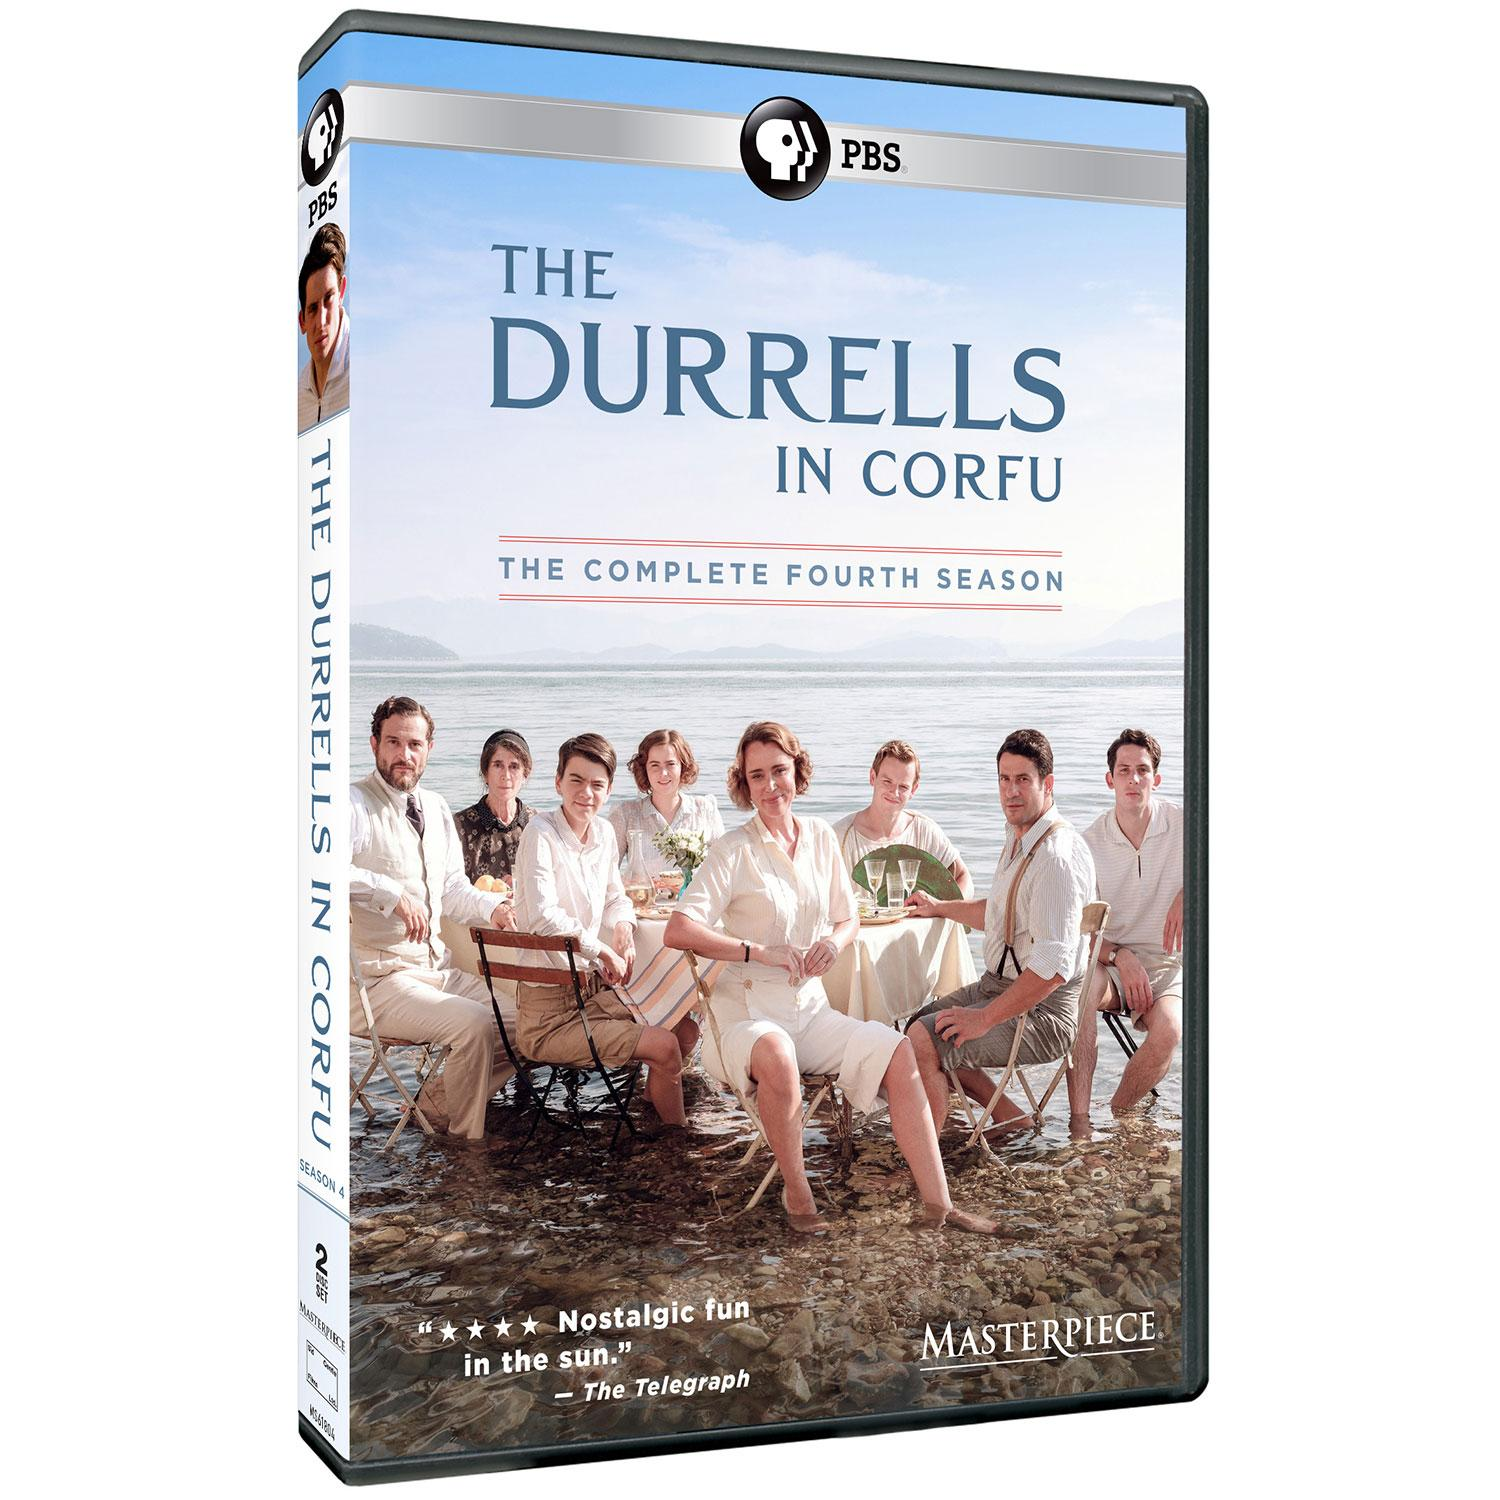 The Durrells in Corfu The complete fourth season by Hall, Christopher